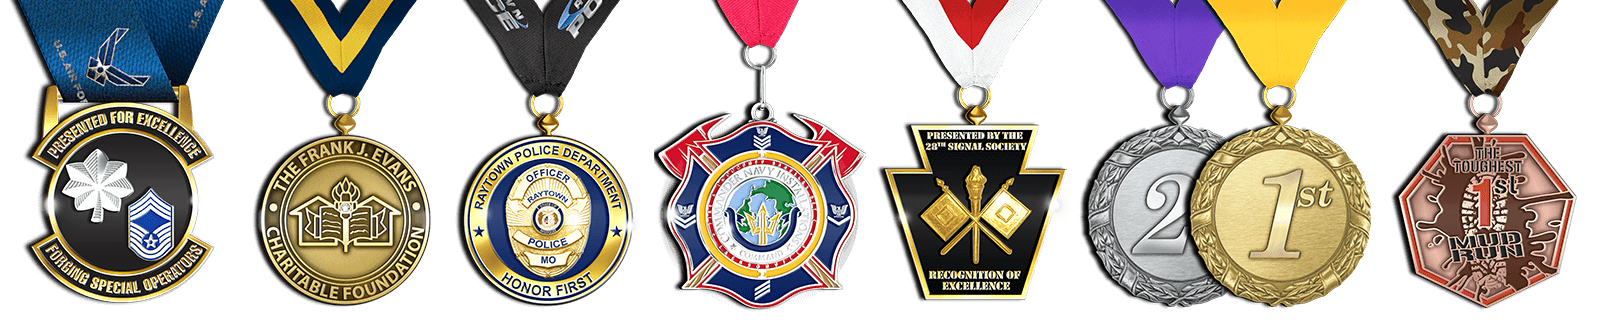 Medals and Awards Header